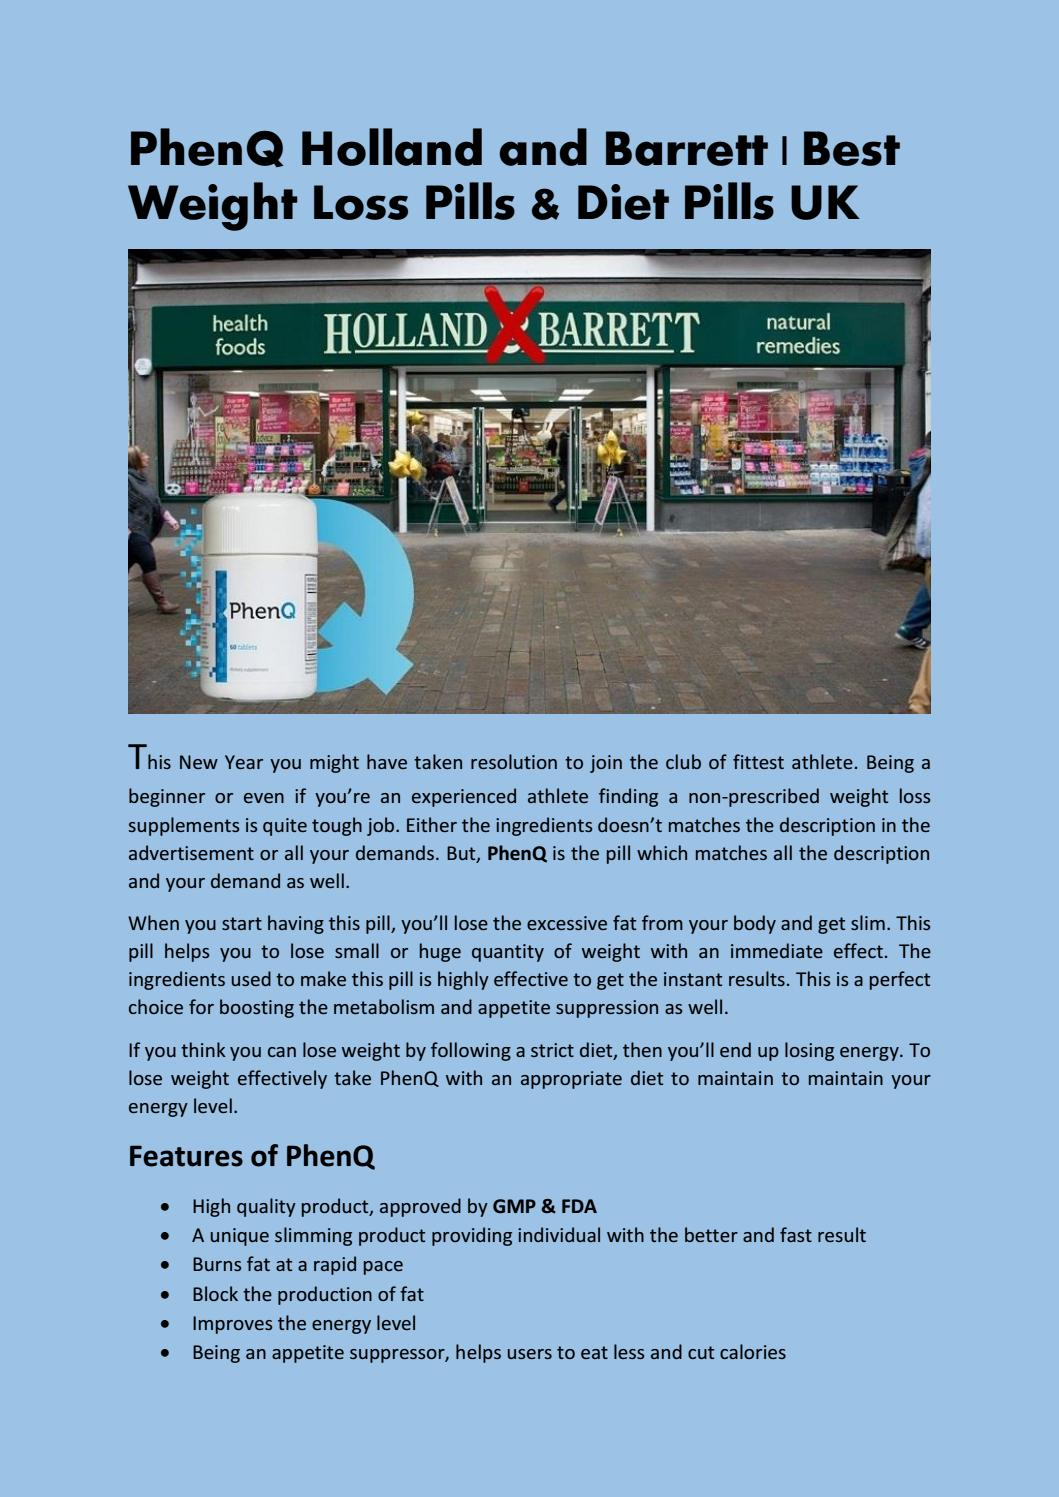 Phenq Holland And Barrett ǀ Best Fat Burner And Weight Loss Pill Uk